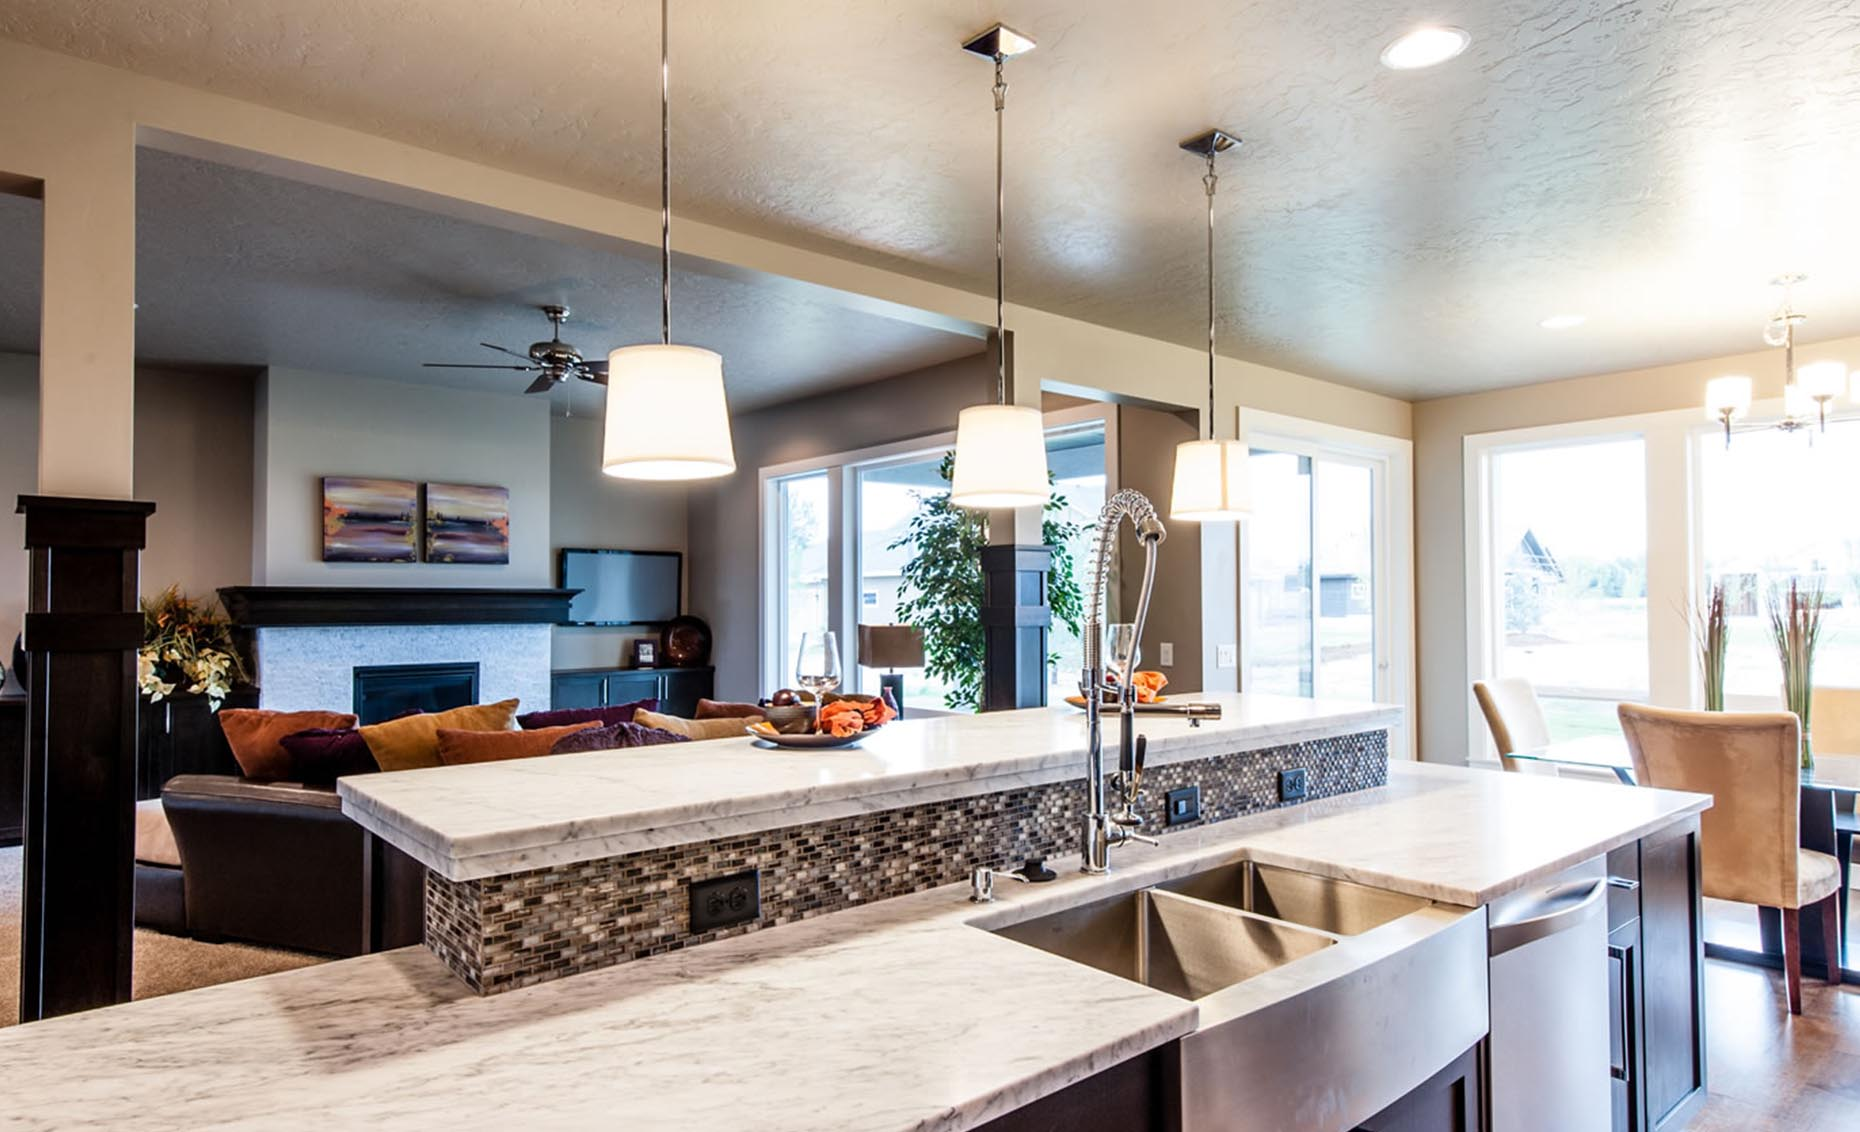 The Braveland House Kitchen Island and Living Room